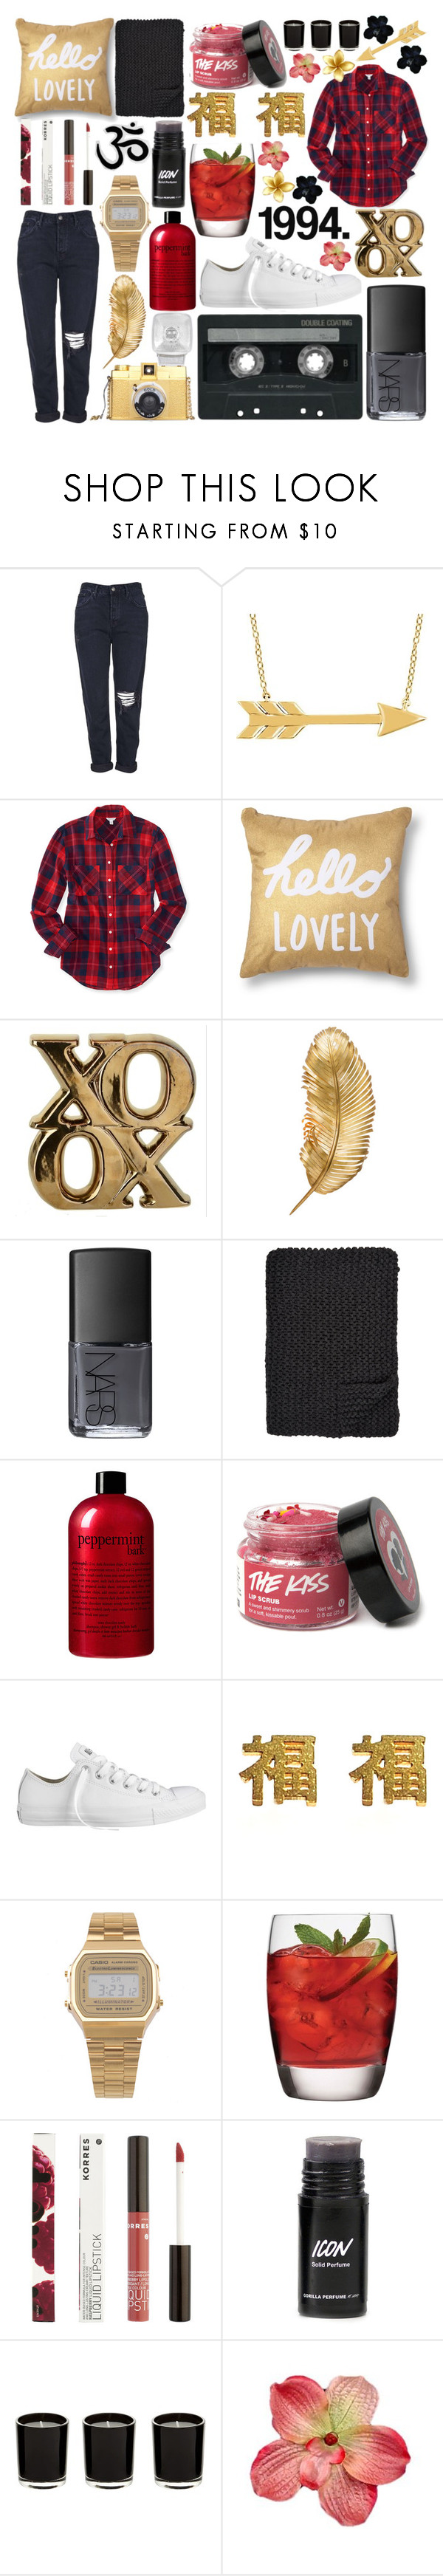 WITH CANDY CANES AND SILVER LANES AGLOW | My Polyvore Finds ...